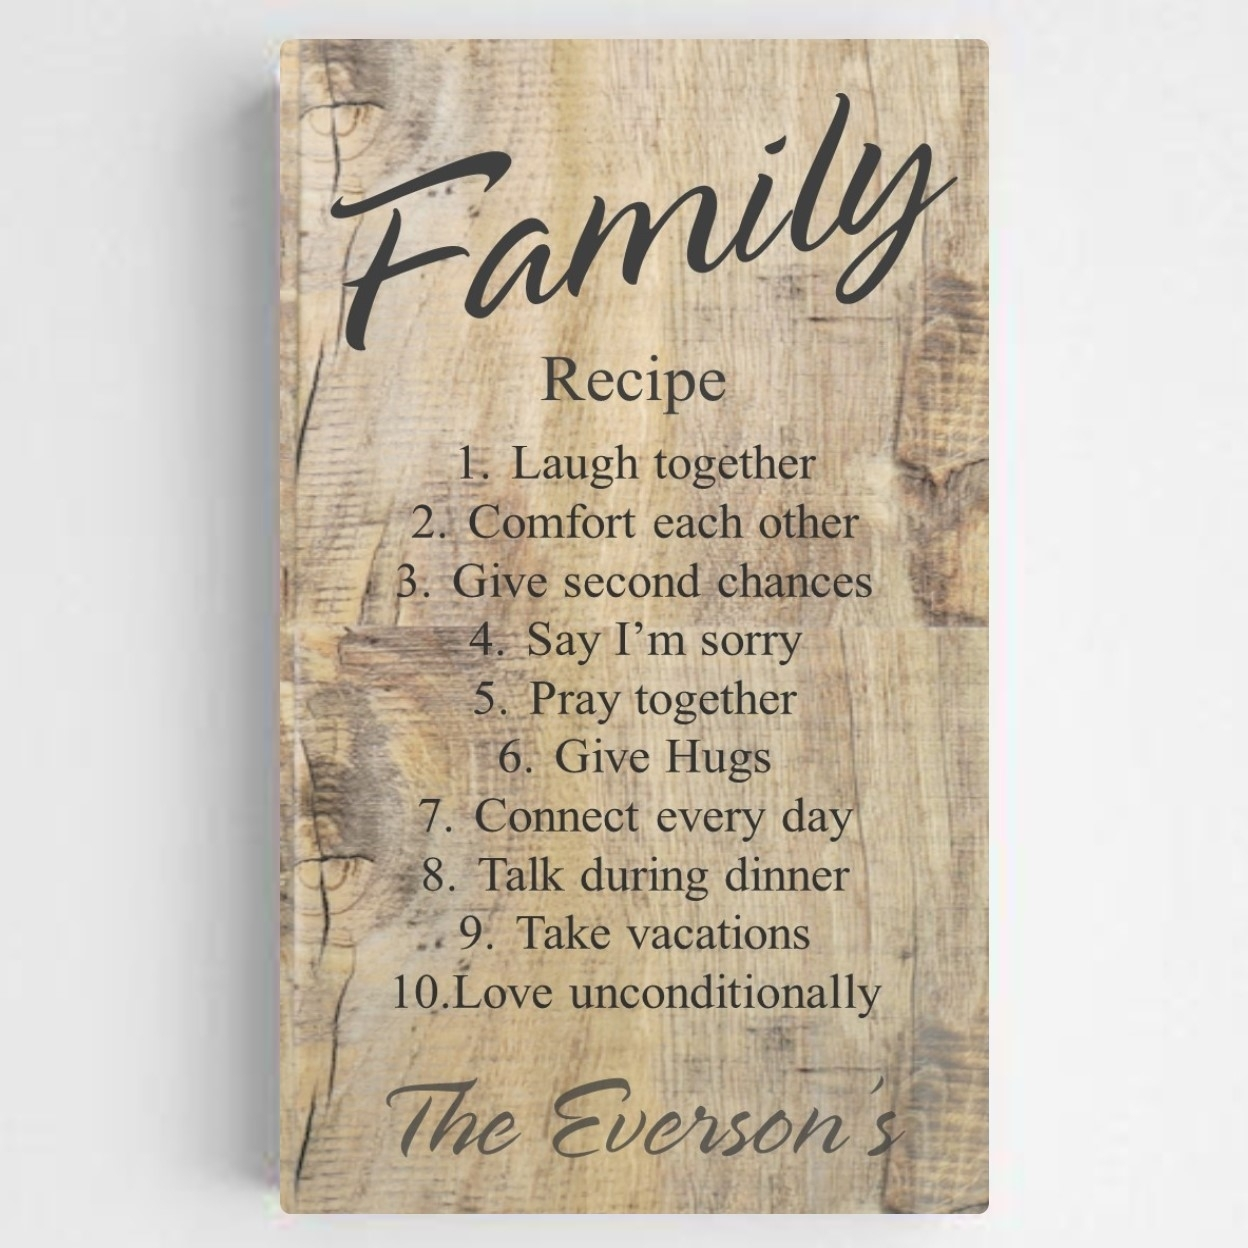 Family Recipe Rustic Canvas Sign | Family Gift | Arttowngifts Throughout Most Popular Rustic Canvas Wall Art (View 12 of 15)